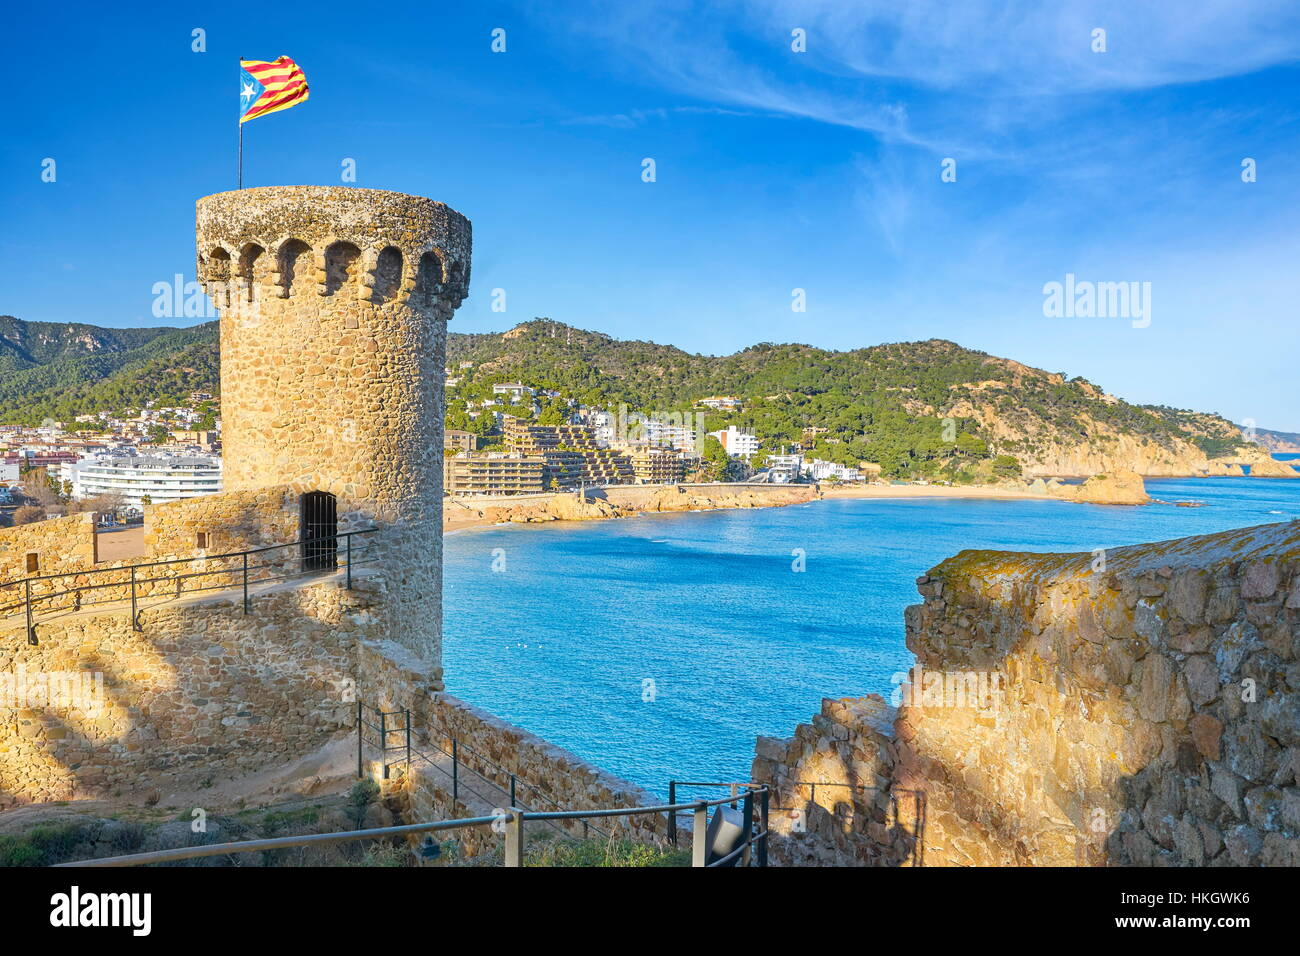 Tossa del Mar, Costa Brava, Catalonia, Spain - Stock Image